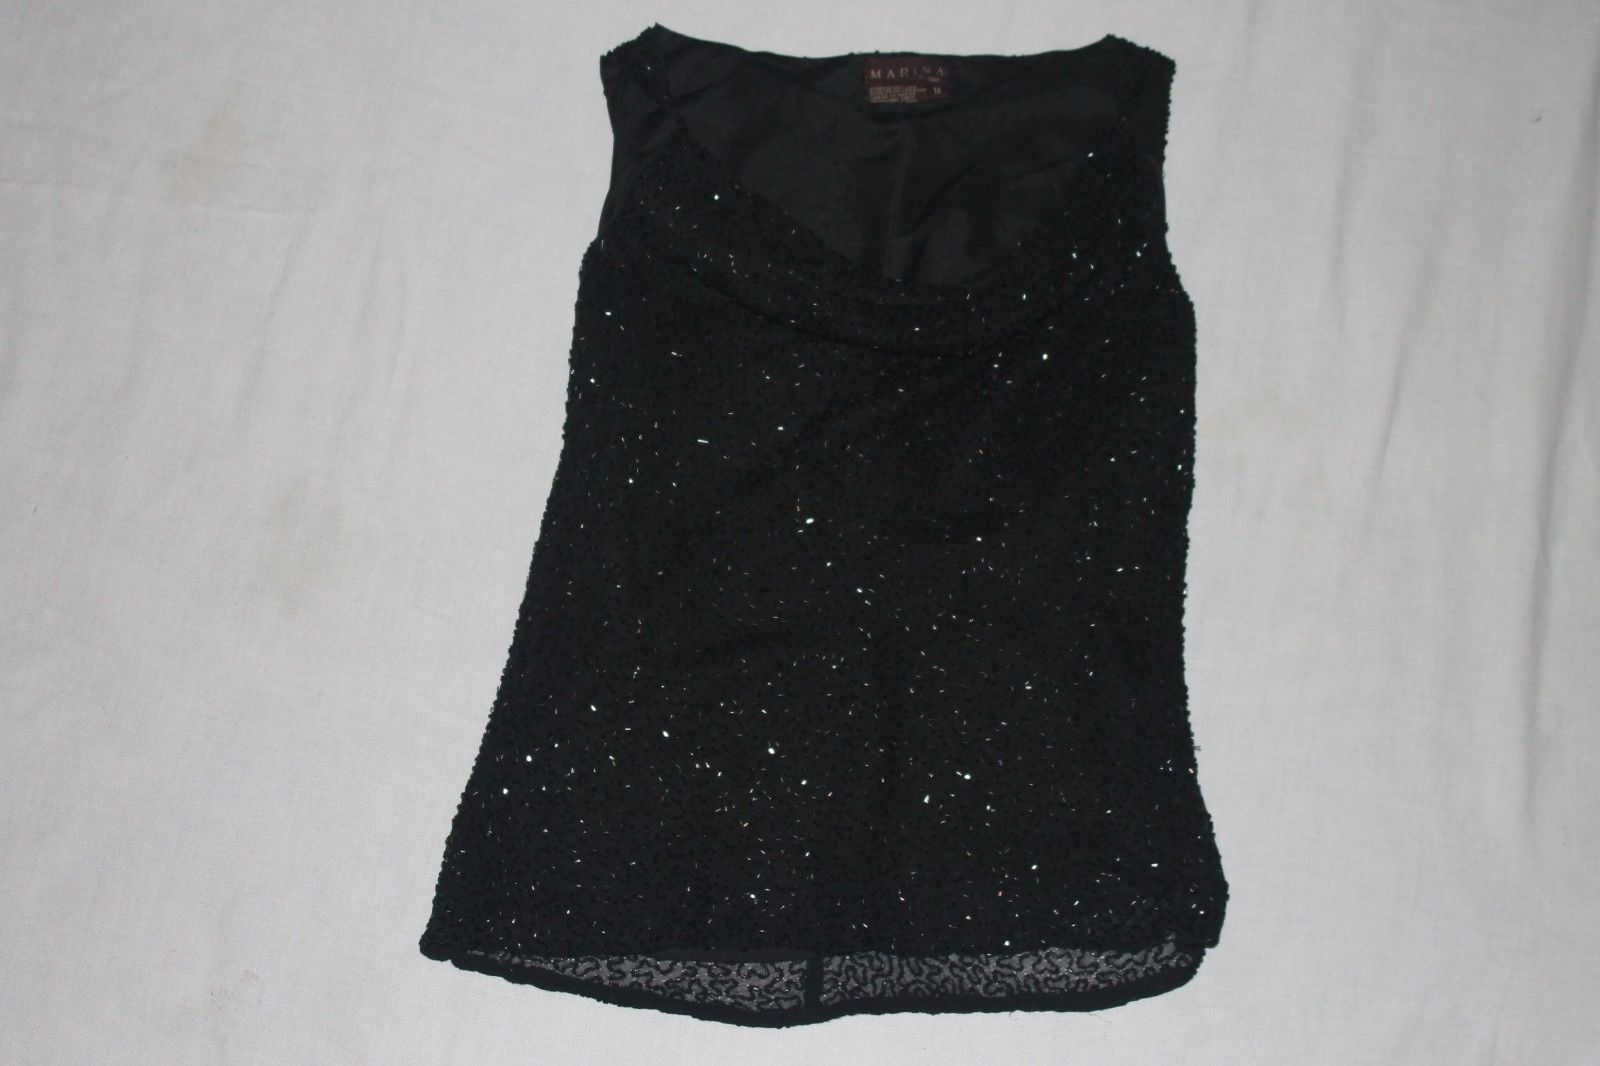 Primary image for Marina by Marina Bresler 100% silk Black sequin lwomans top Size M